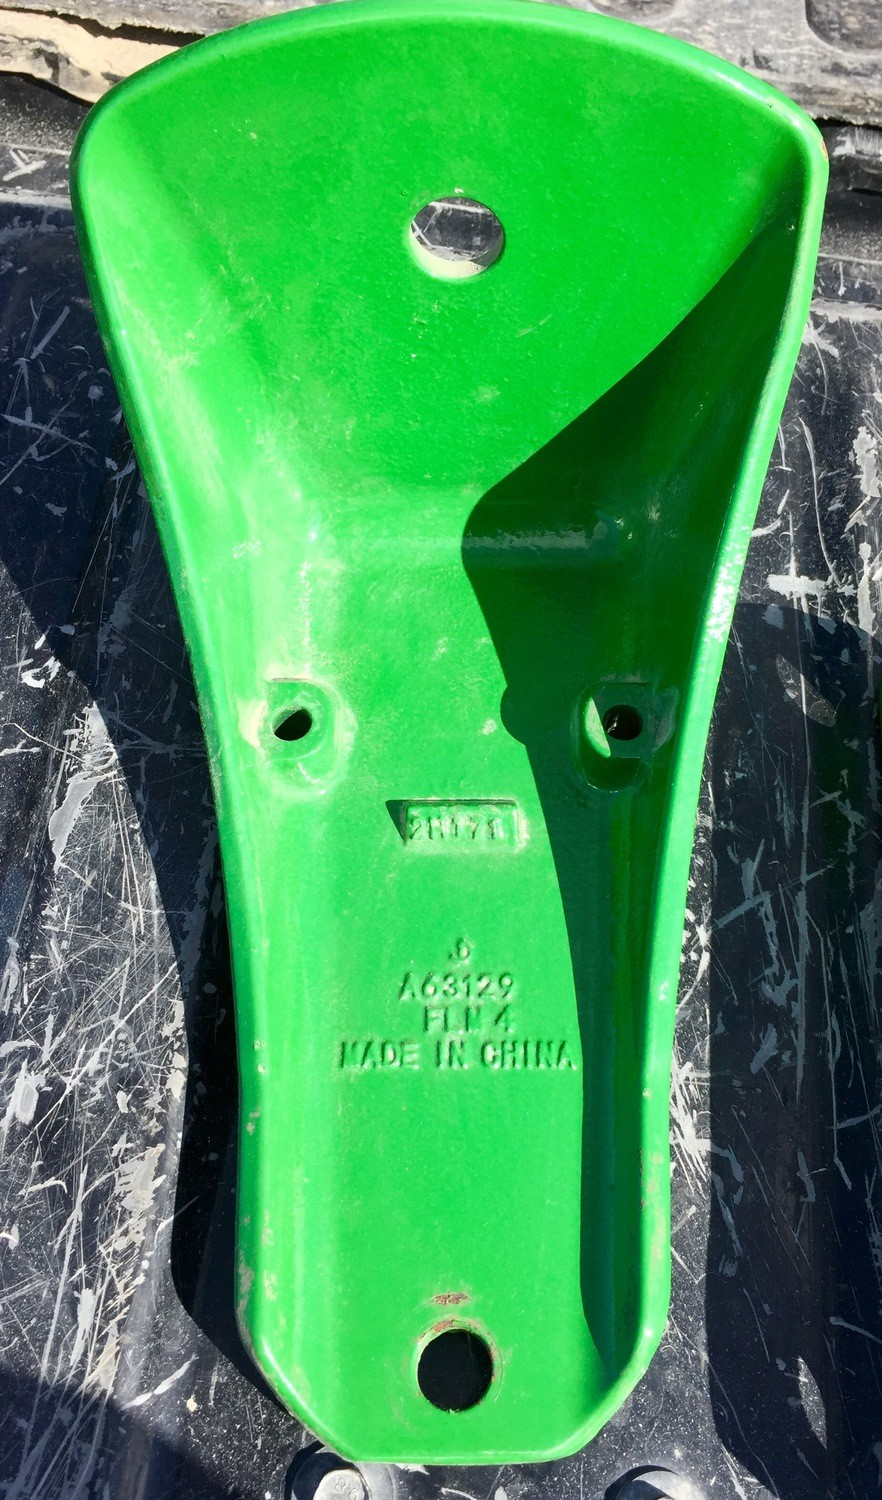 New JD Row Unit AirBag Bracket (Upper)